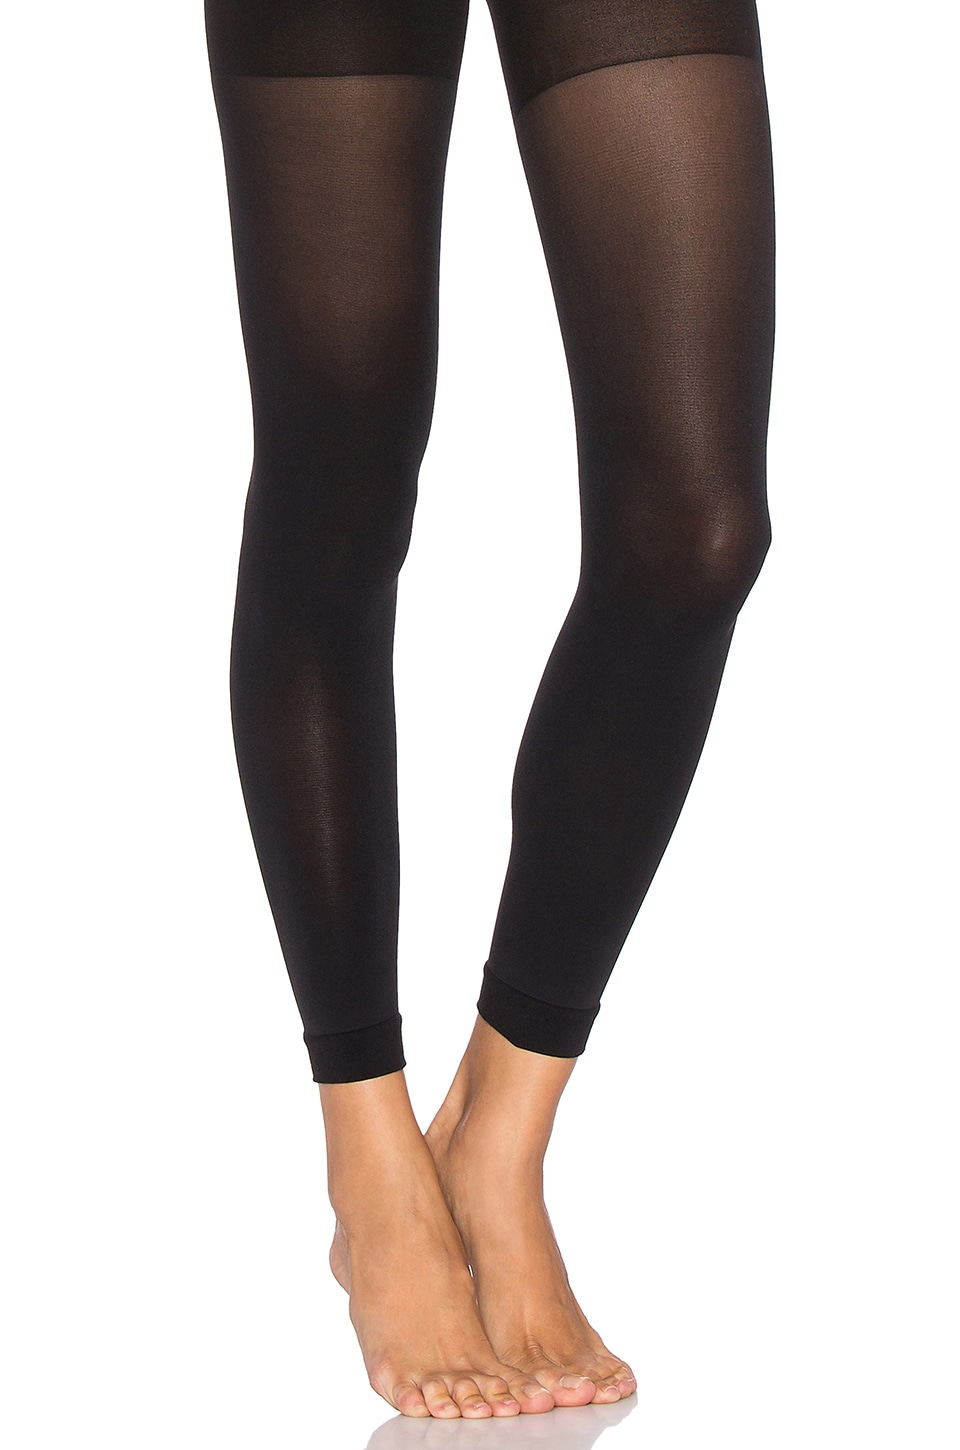 SPANX Luxe Leg Footless Tights in Very Black